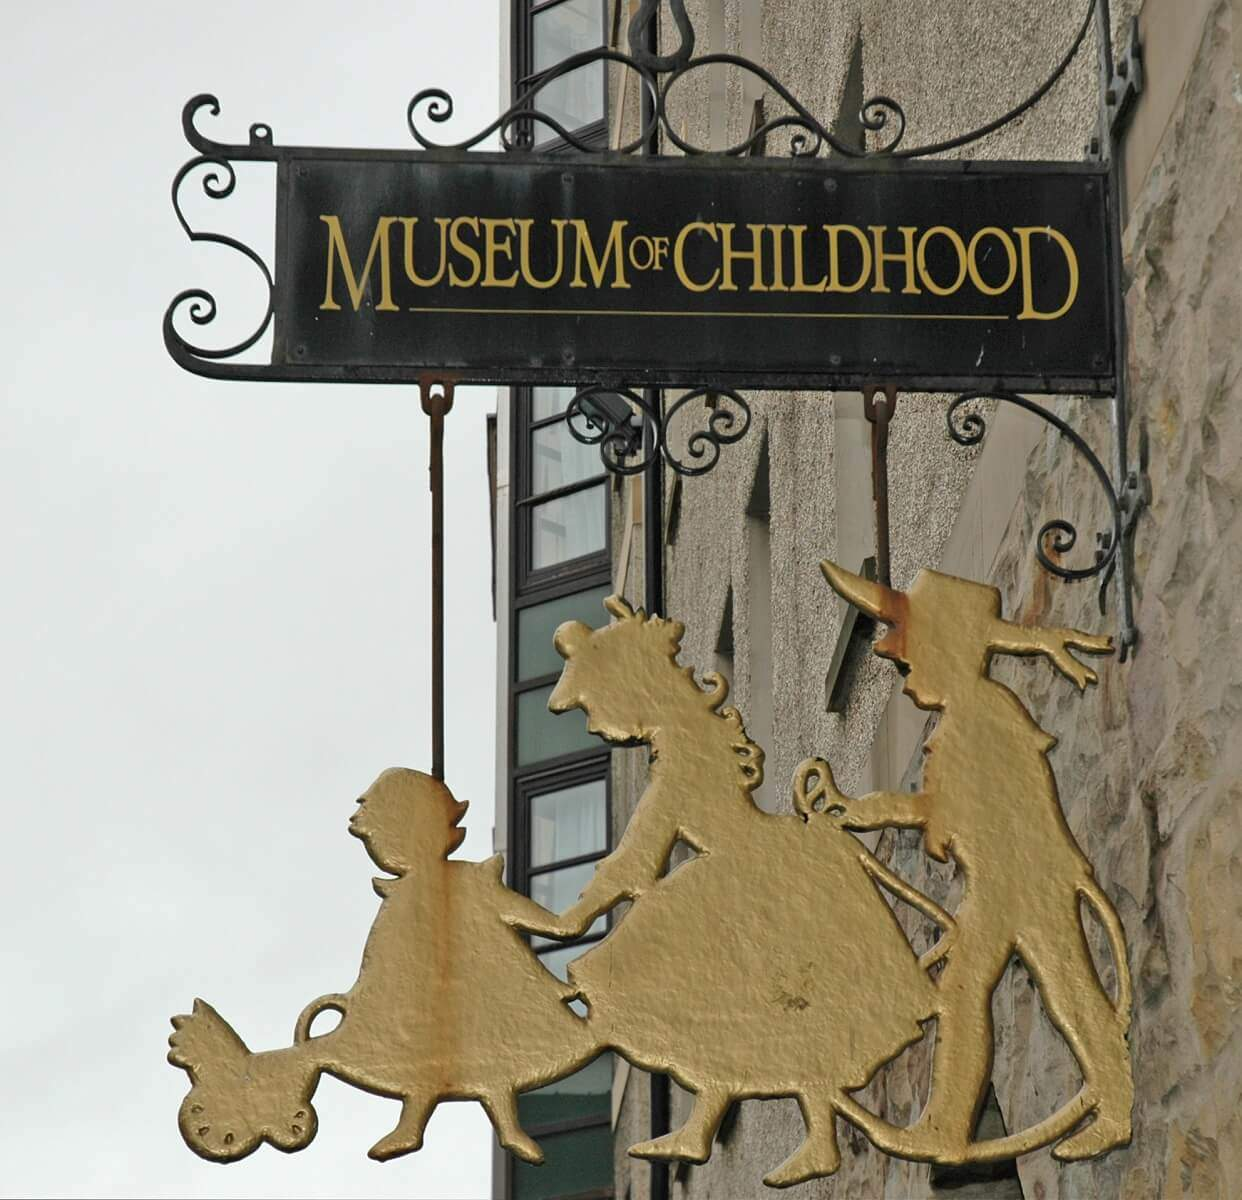 Museum_of_childhood_edinburgh